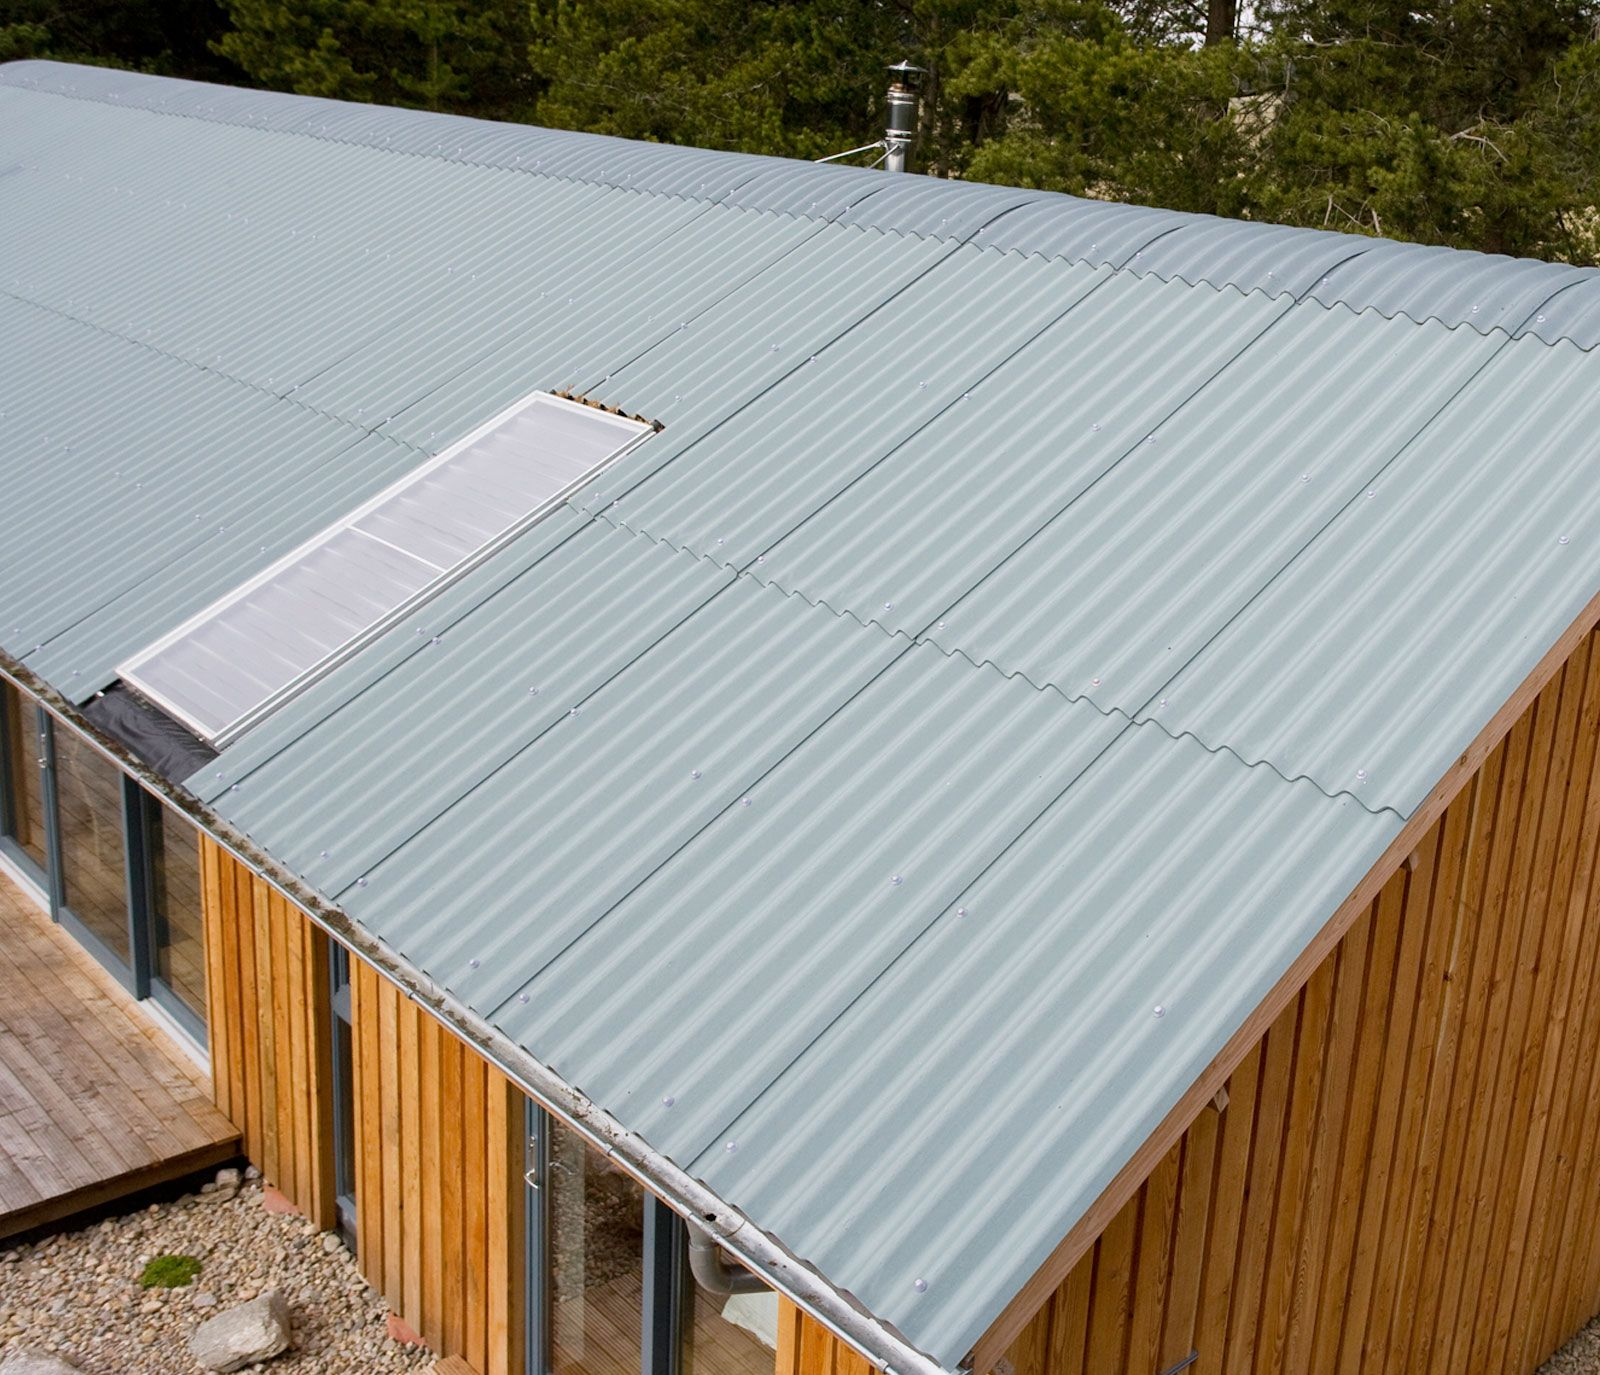 Fibre Cement Profile Sheeting Profile 6 Marley Eternit Roof Cladding Exterior Cladding Windows Exterior